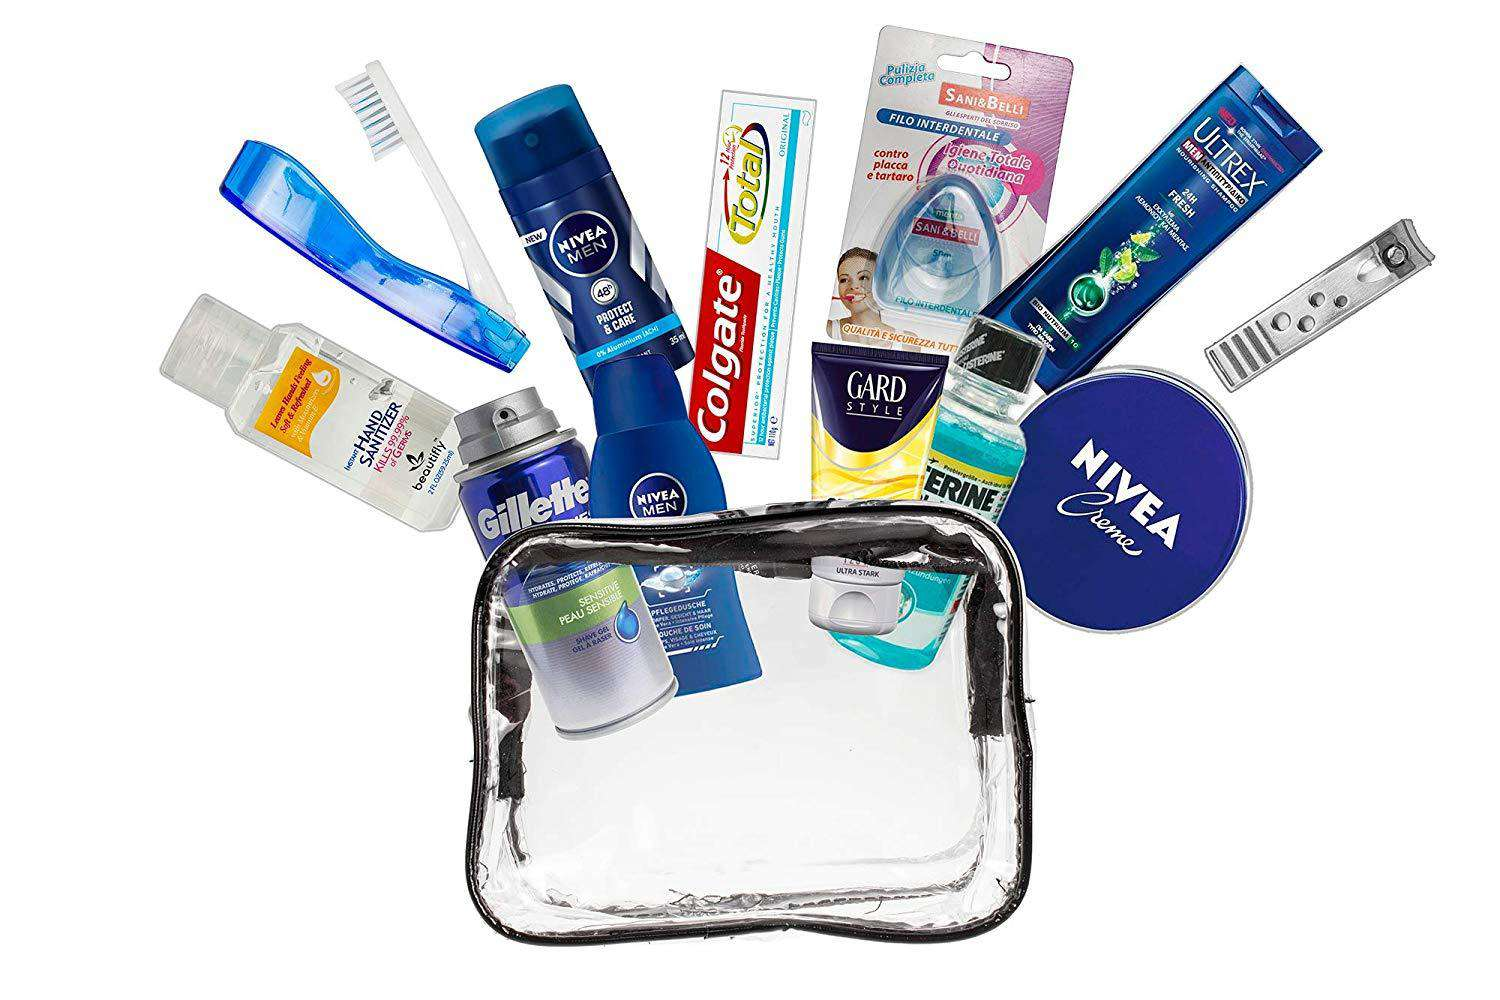 Women 13-Piece Convenience Travel Size kit, Suitable for Cabin Luggage, Vacation and Business Trips, comprising All Necessary Personal Care Branded Products, in a PVC Vanity case. Cabin Approved.